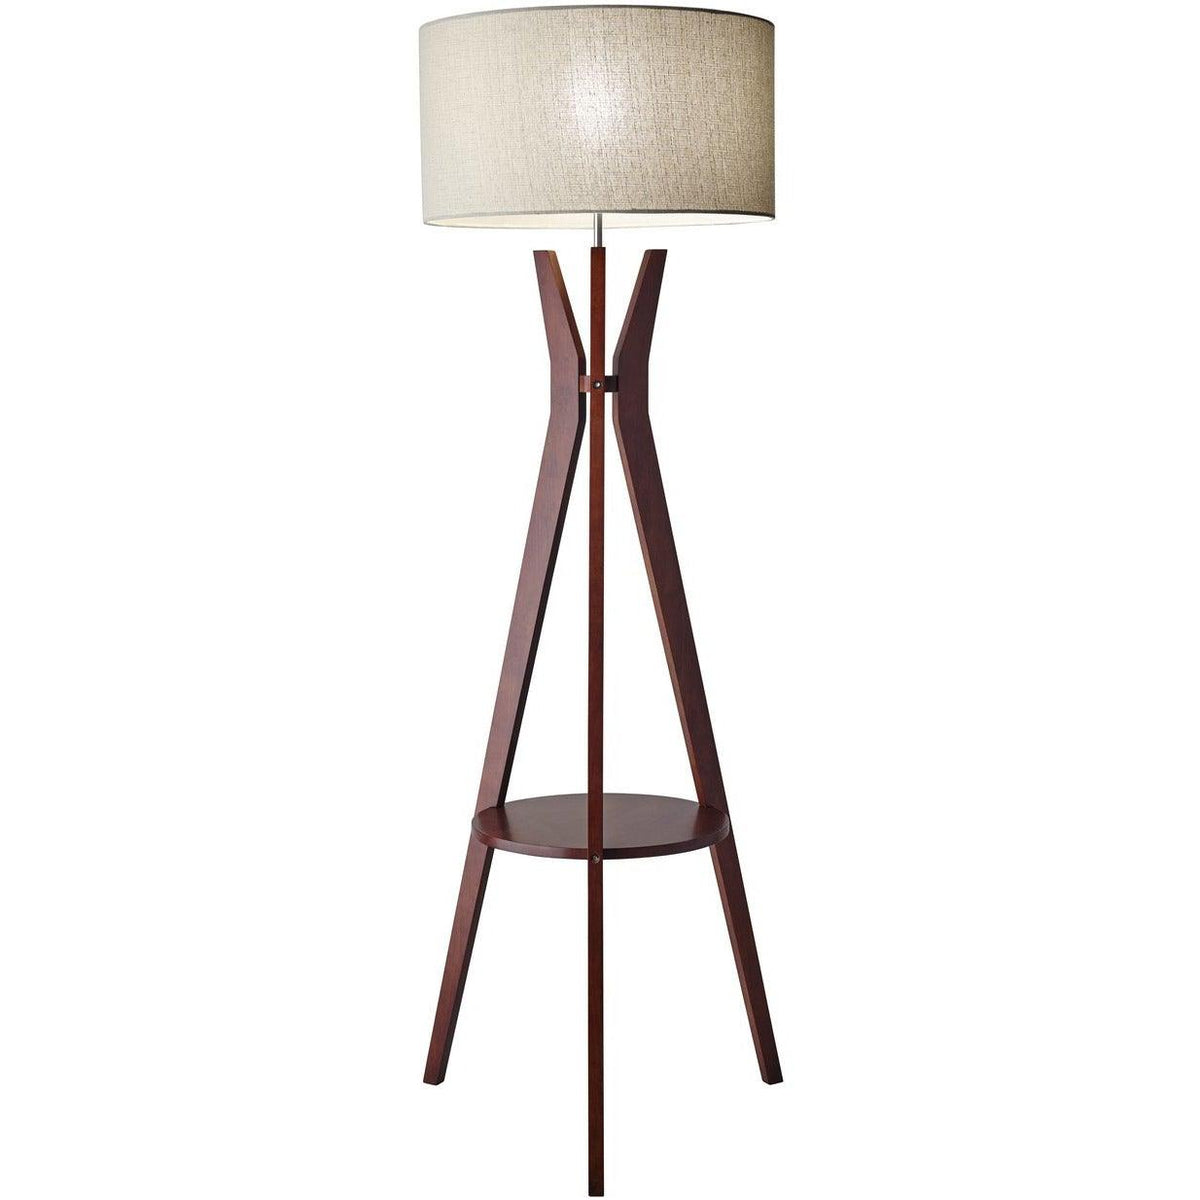 Adesso Home - 3471-15 - One Light Floor Lamp - Bedford - Solid Walnut Wood